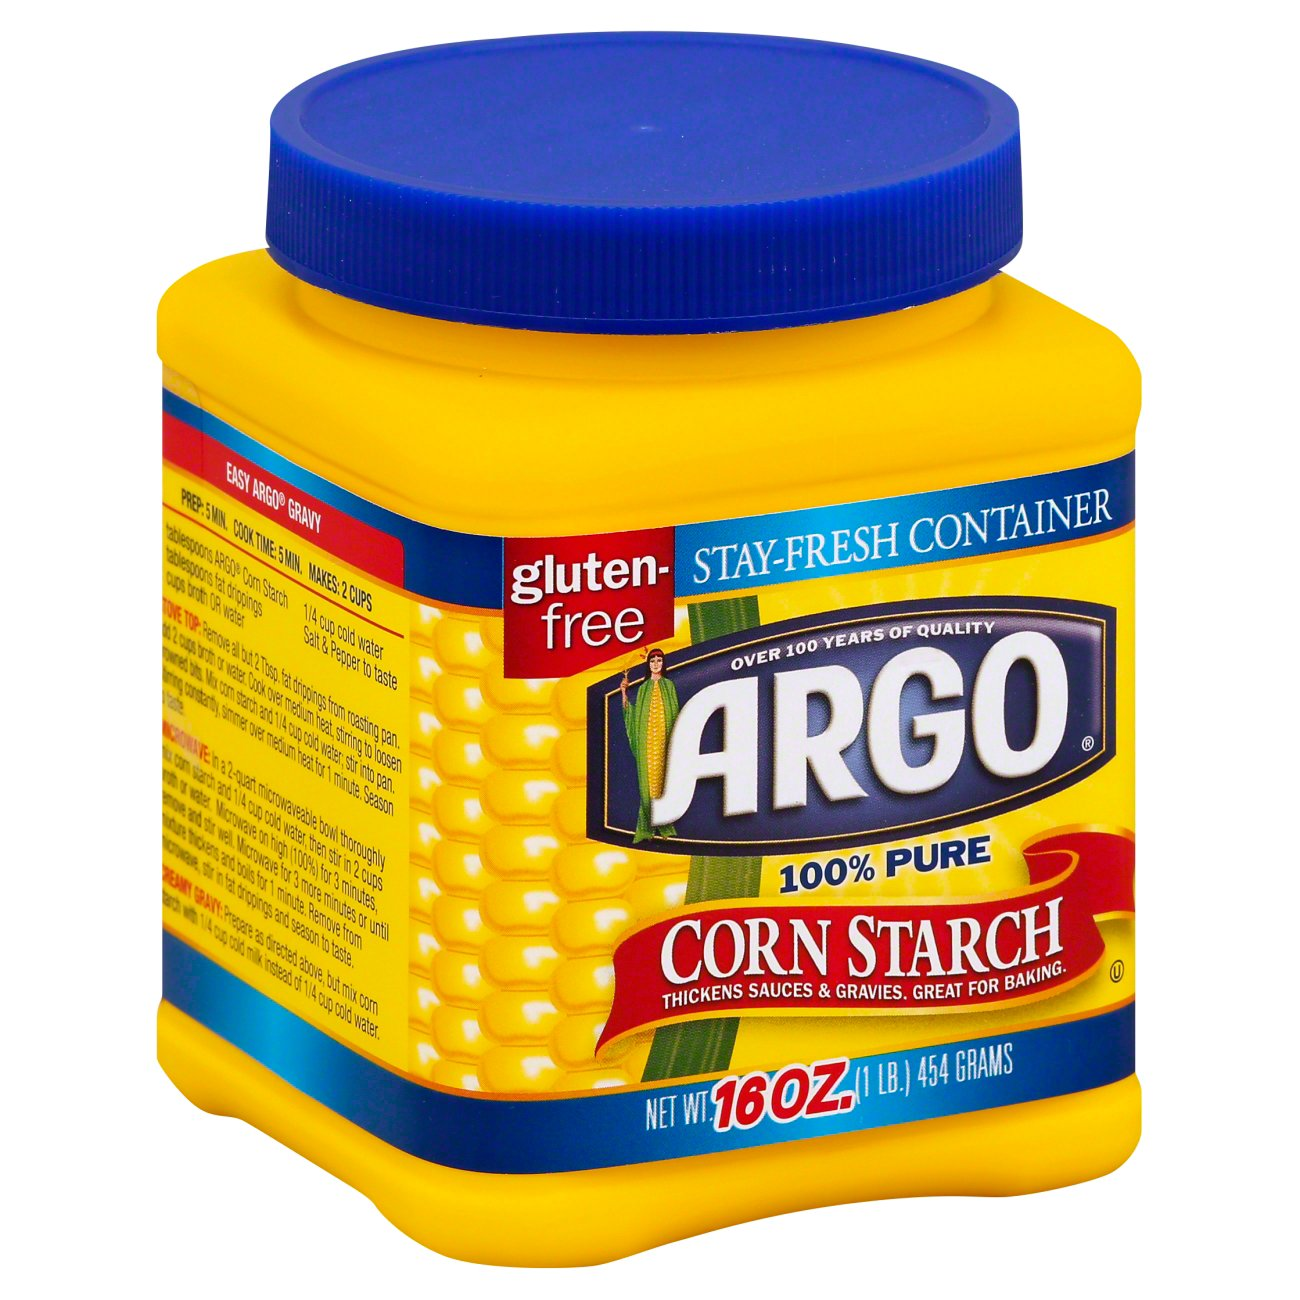 Professional Cleaners Secrets, Corn Starch